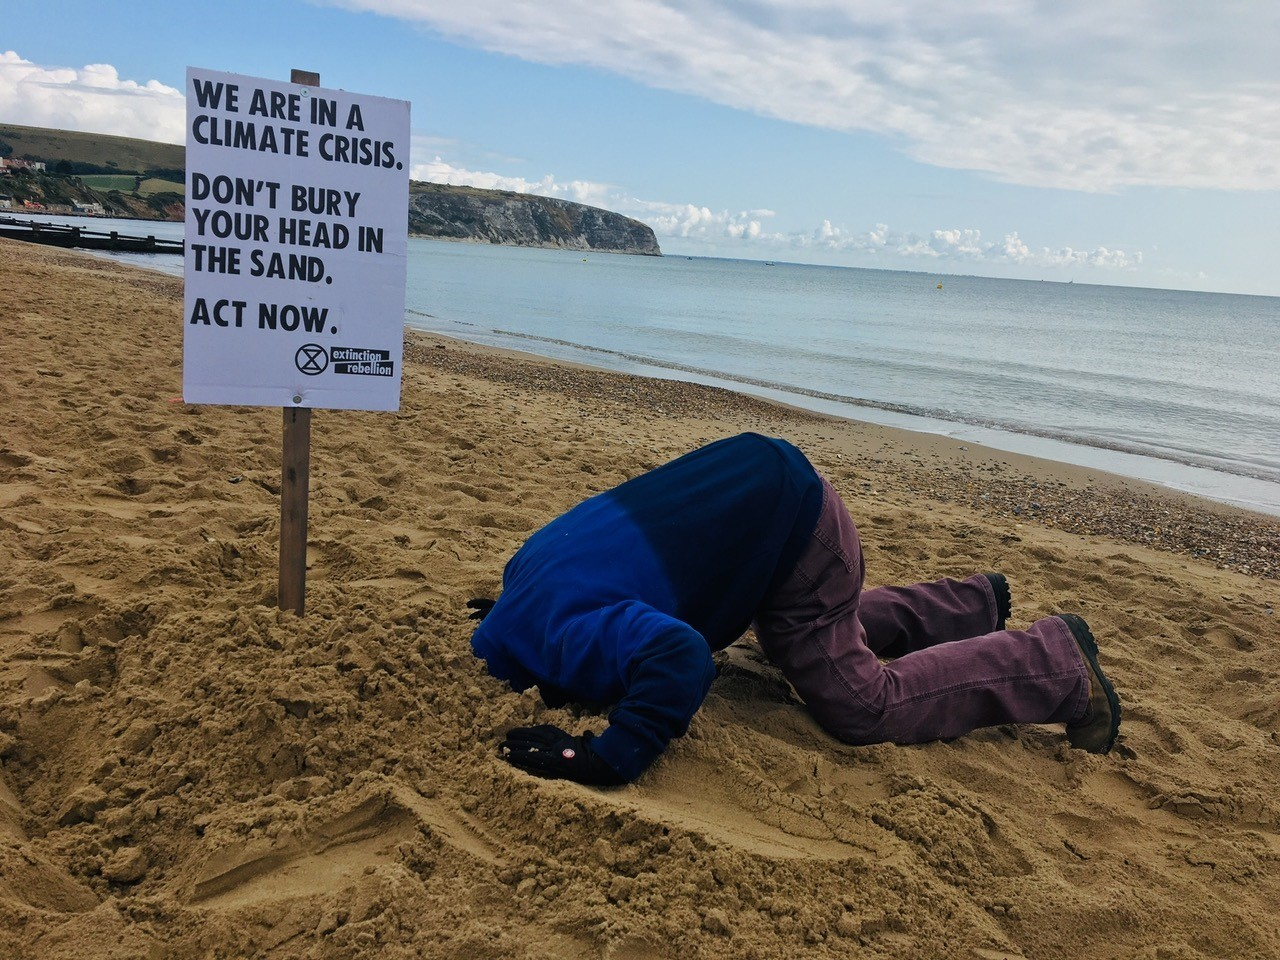 Environment activists urge 'take your head out of the sand'